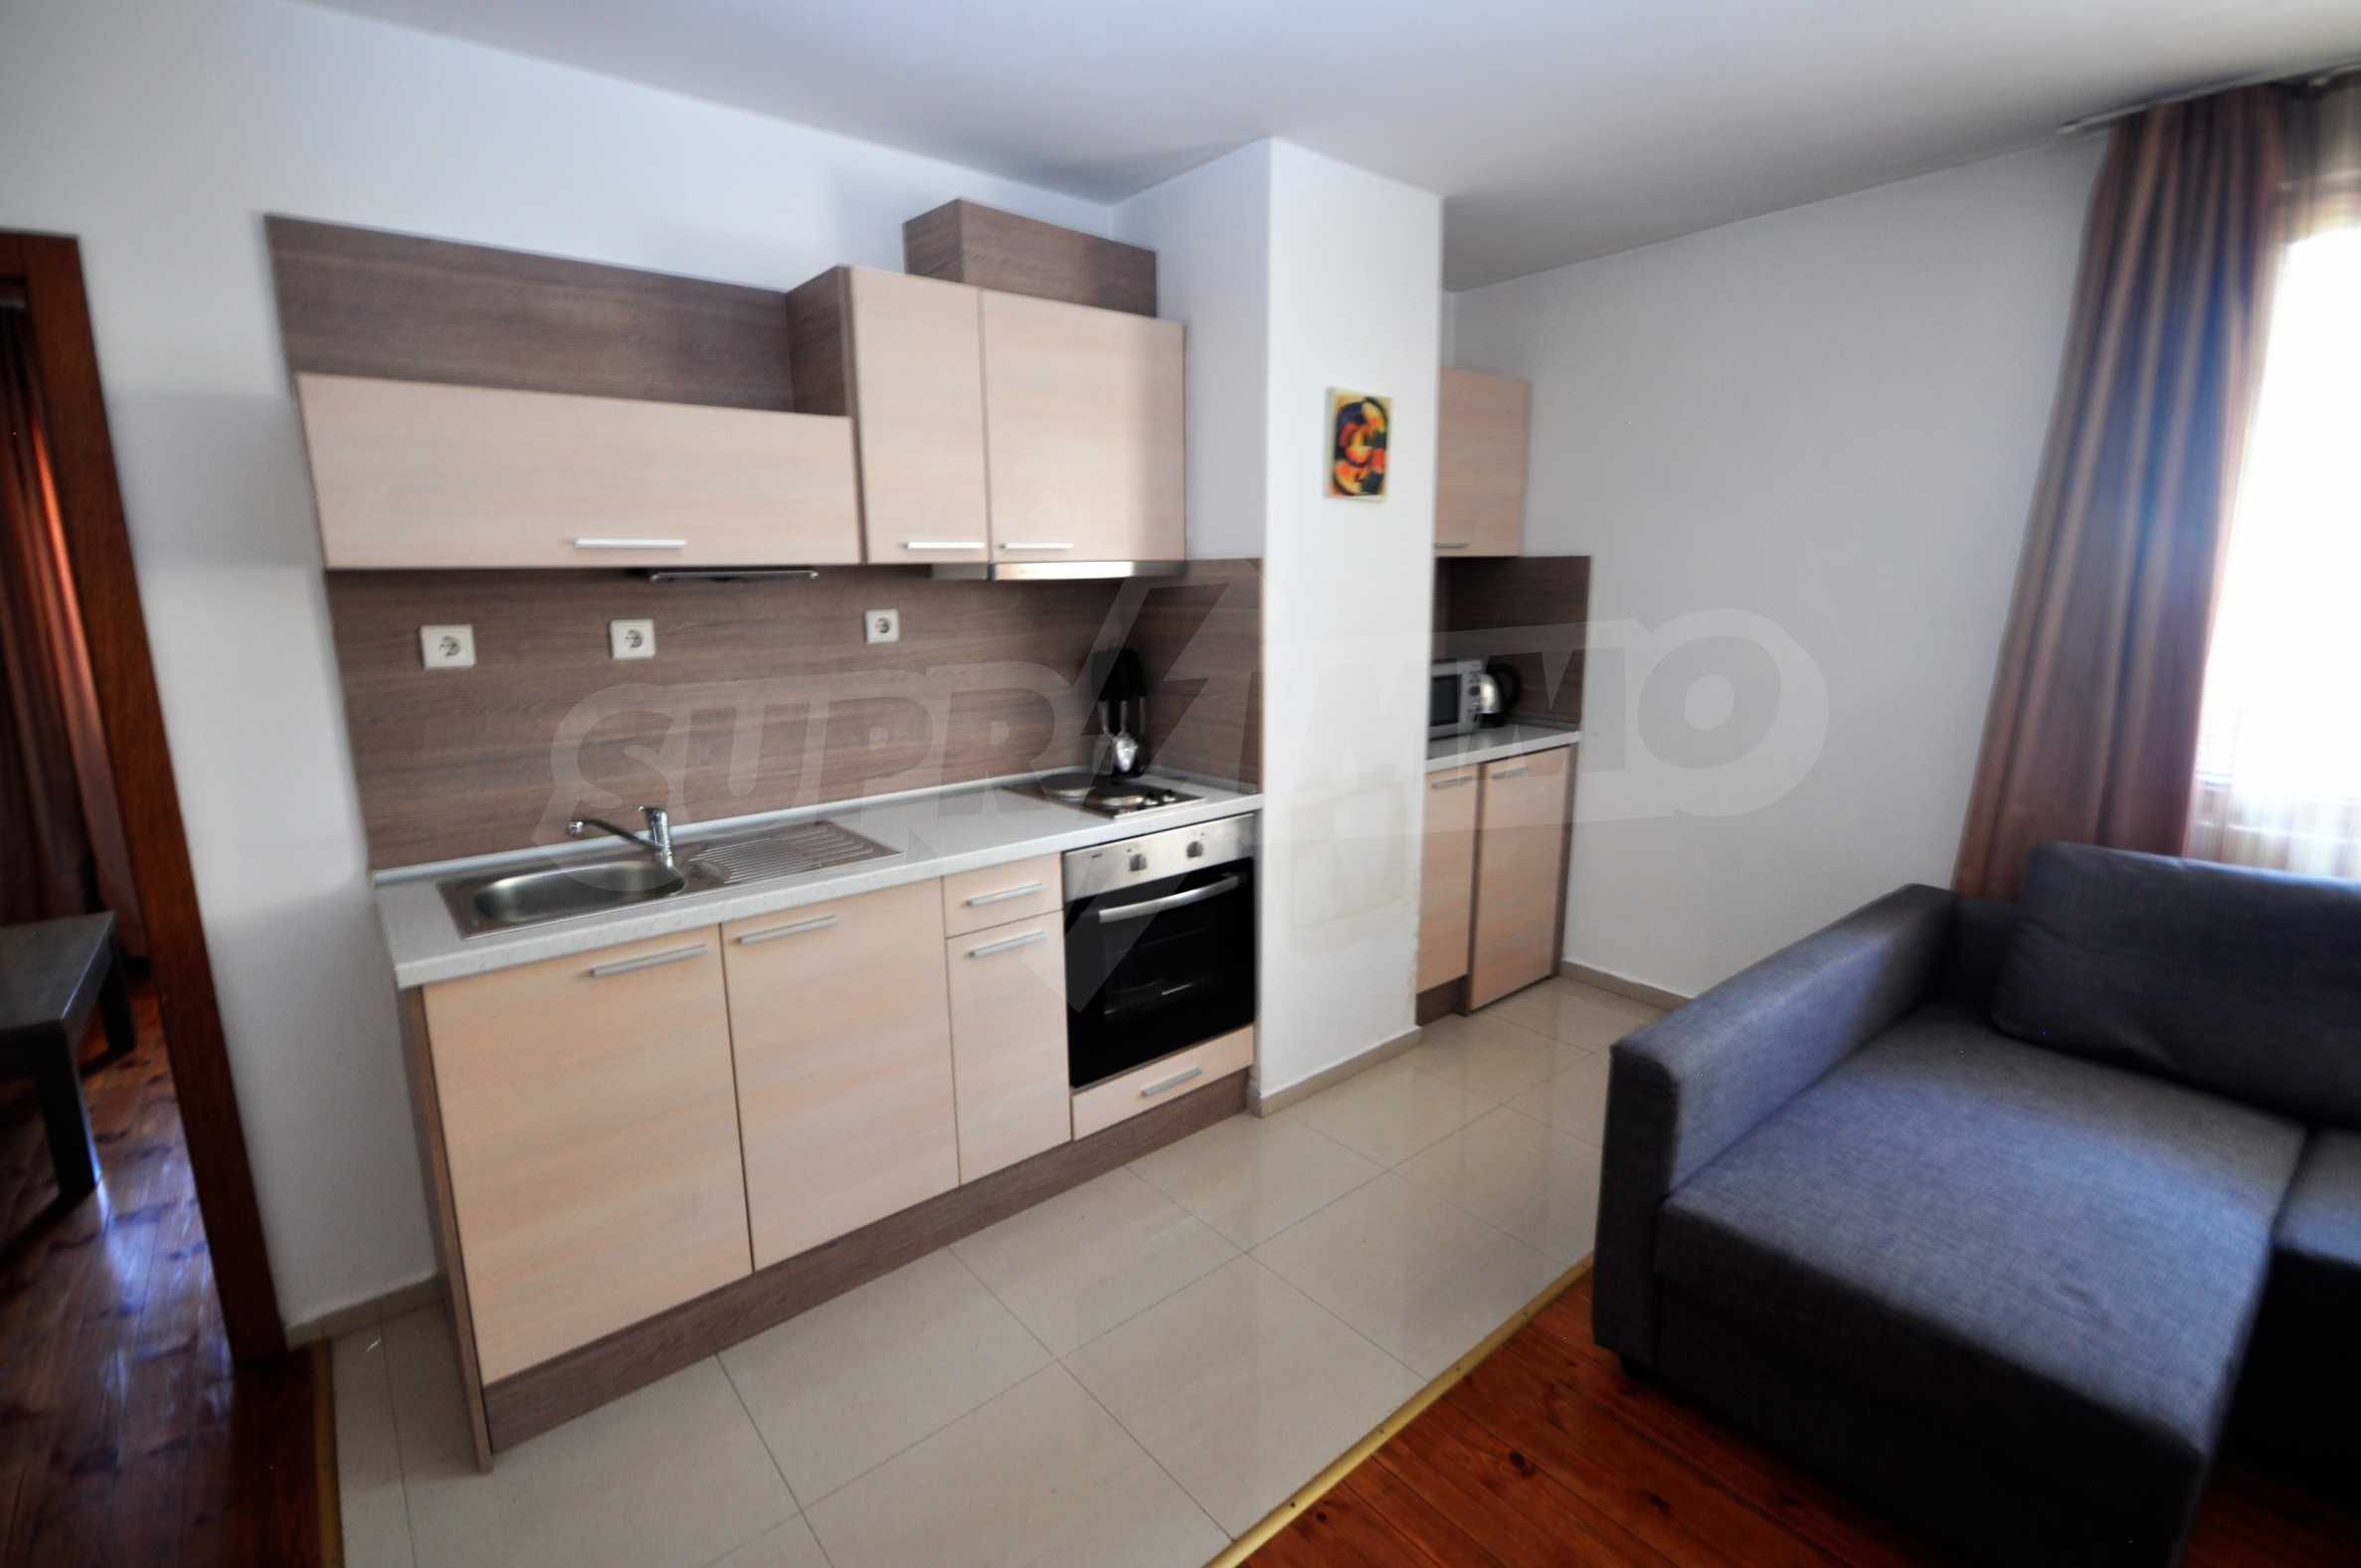 One bedroom apartment meters from the lift in the town of Bansko 1